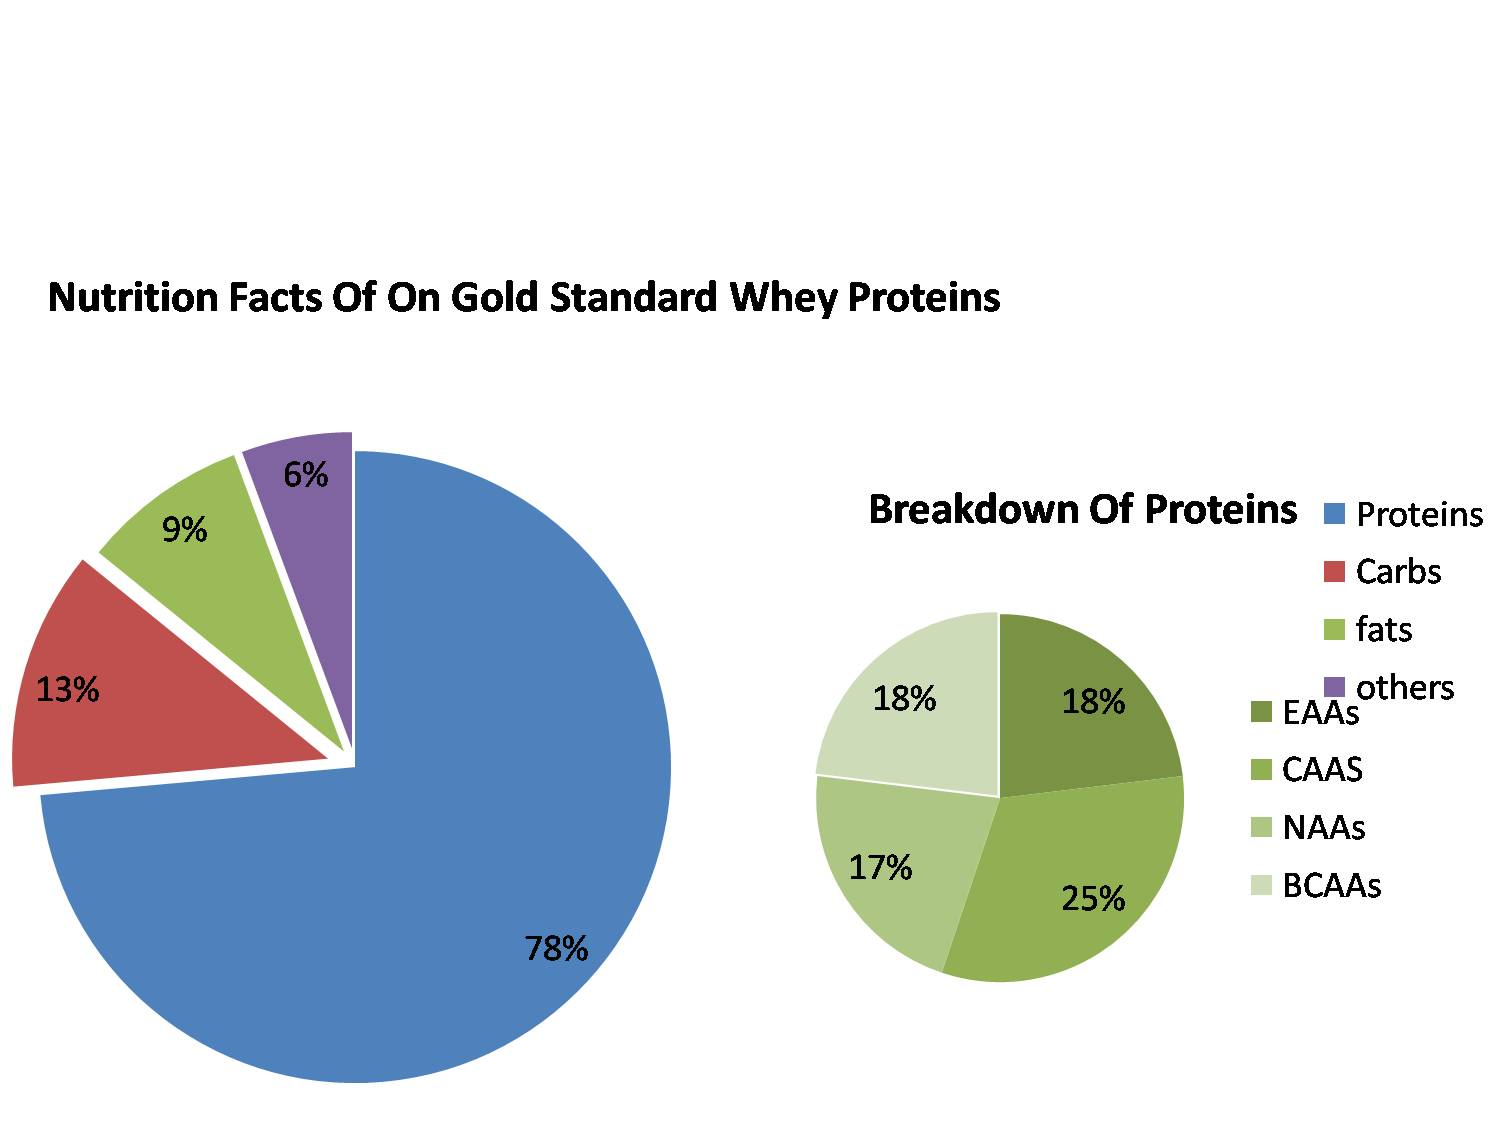 nutrition facts of On Gold Standard Whey Protiens